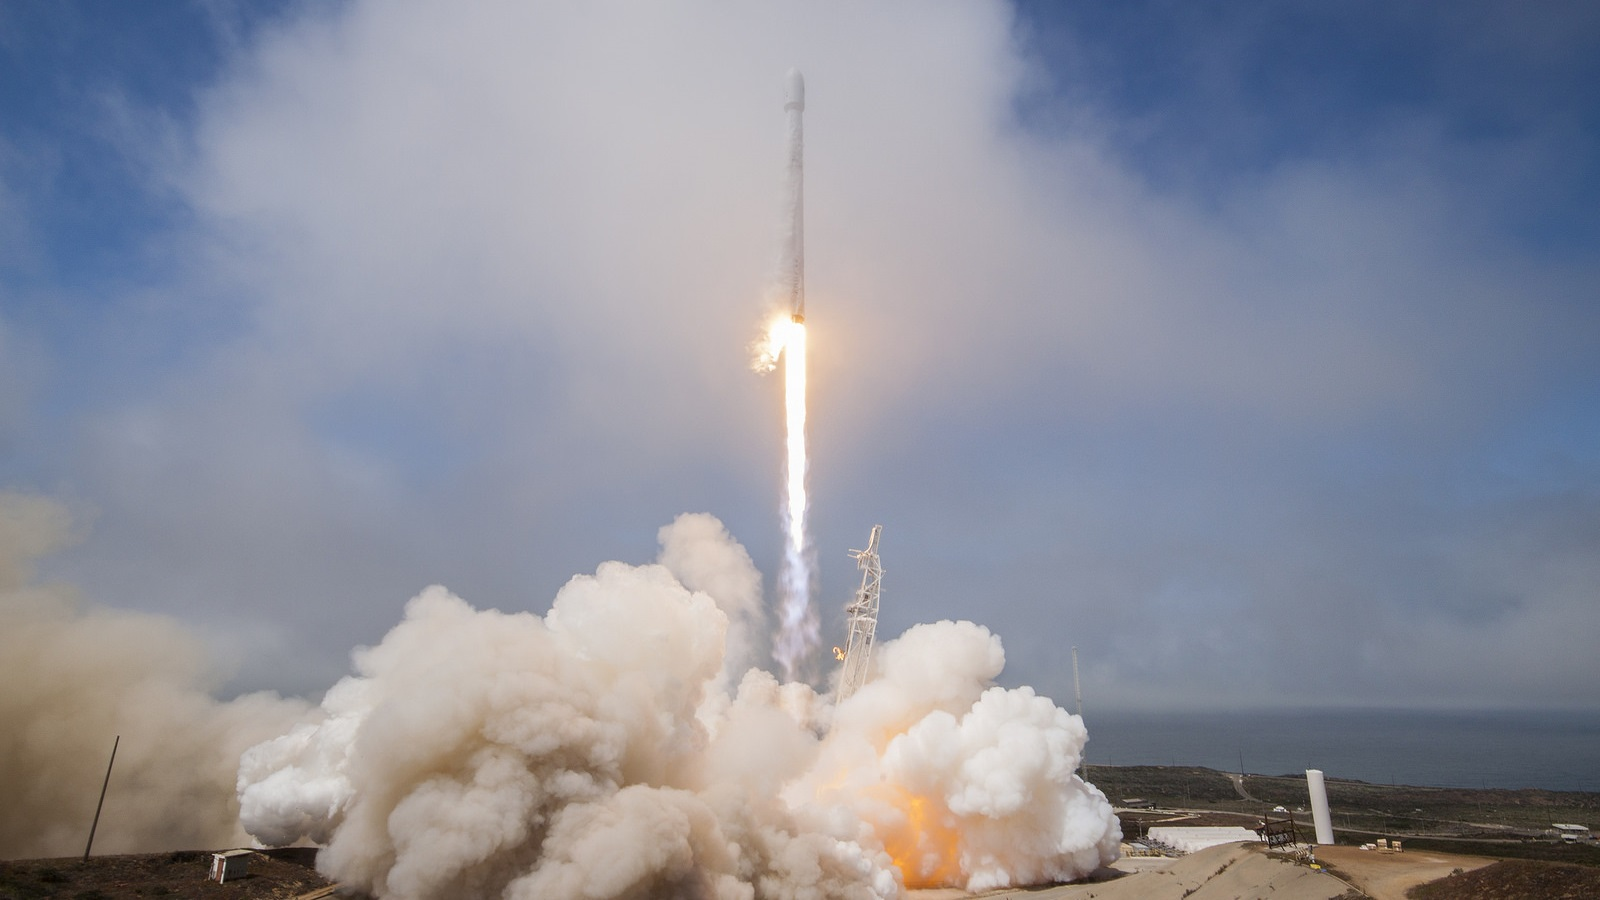 Falcon 9 launch of the Formosat-5 mission